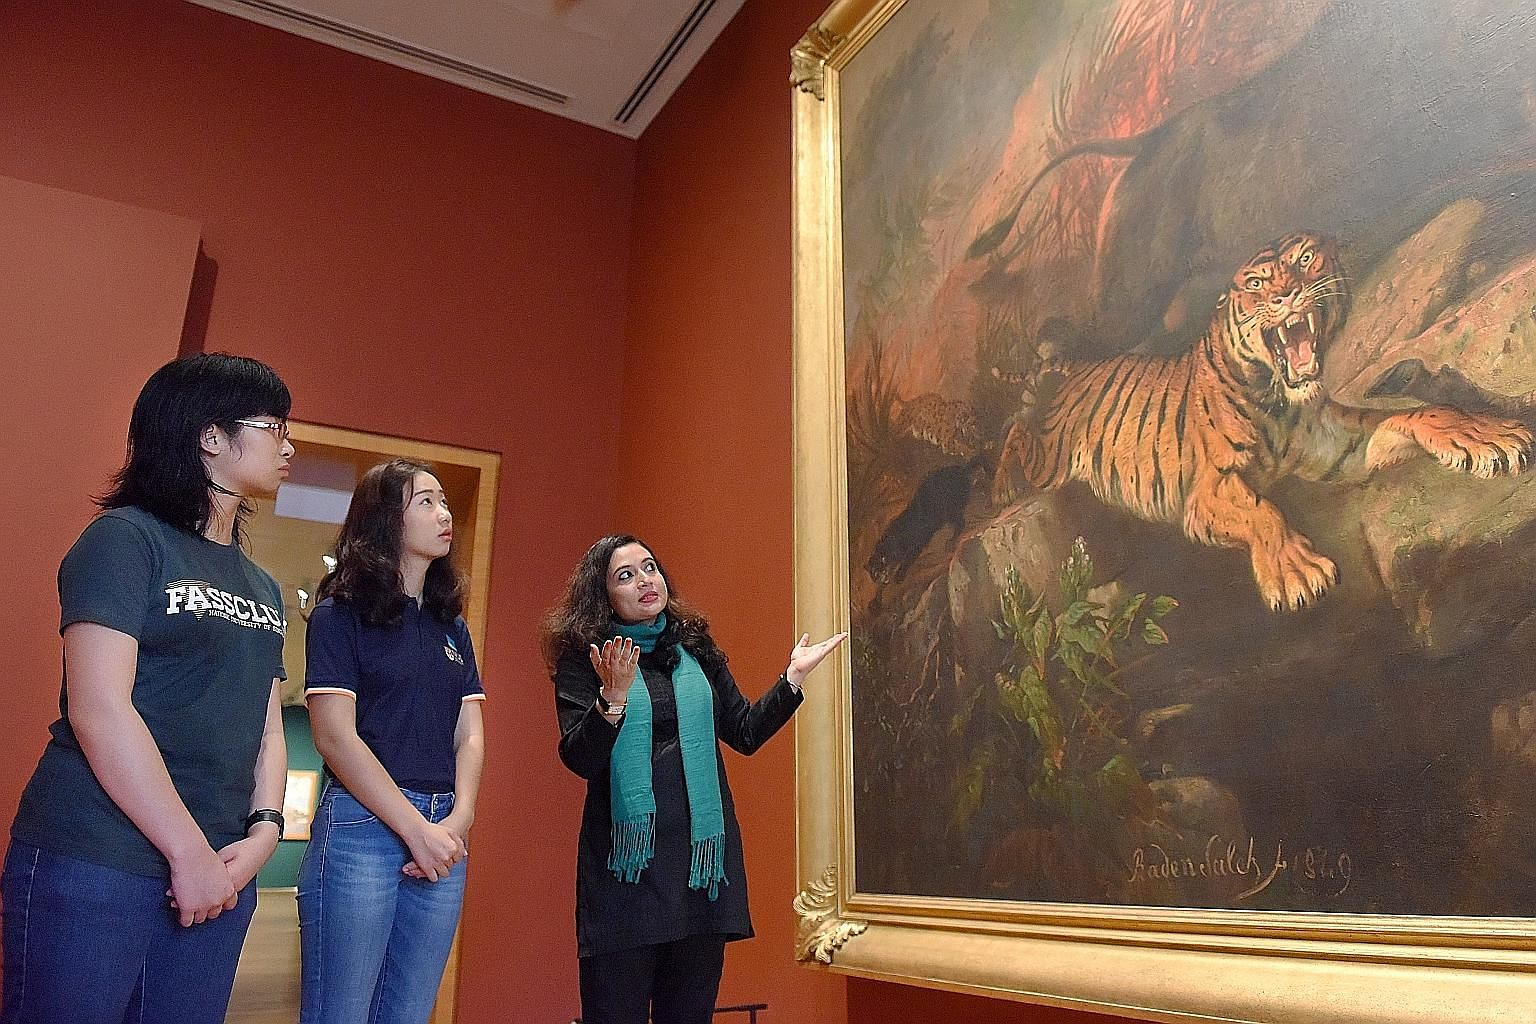 Dr Priya Maholay-Jaradi analysing Indonesian artist Raden Saleh's painting Forest Fire with two of her students, Ms Hor Jen Yee (left) and Ms Chen Wenting, who had taken an introductory module on art history.